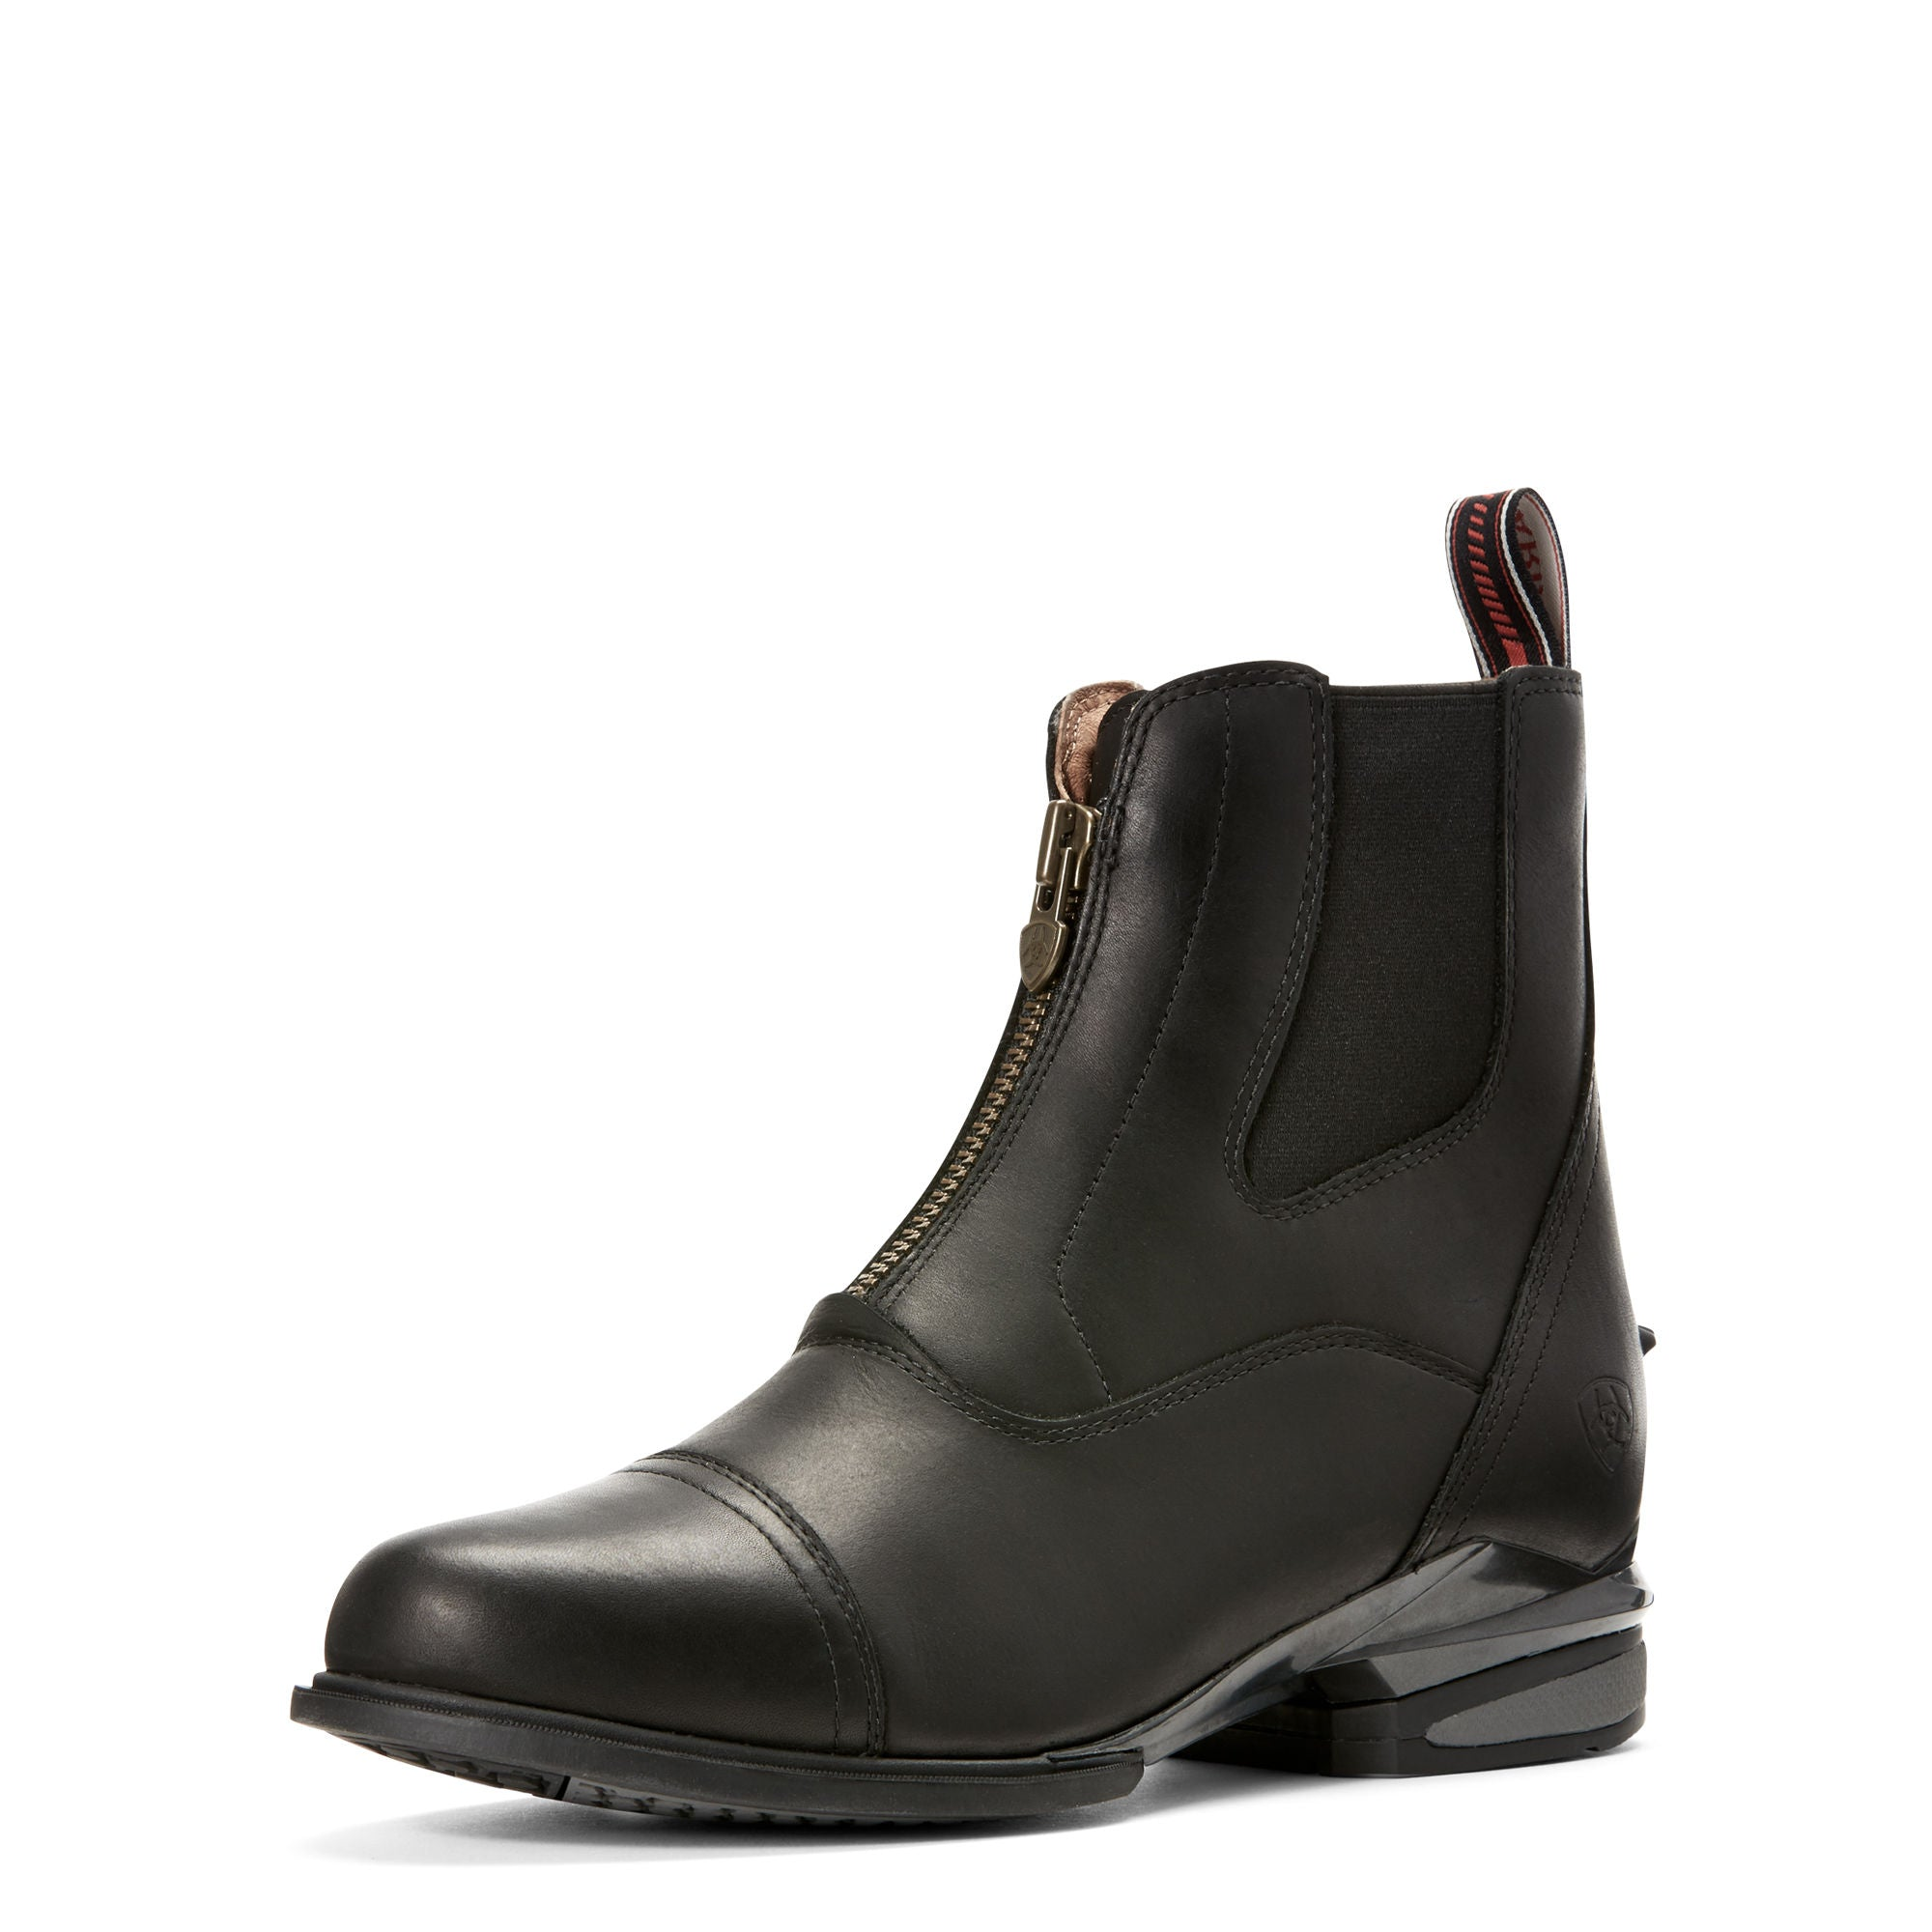 Devon Nitro Paddock Boot-Boots-Ariat-5.5-Black-Manhattan Saddlery